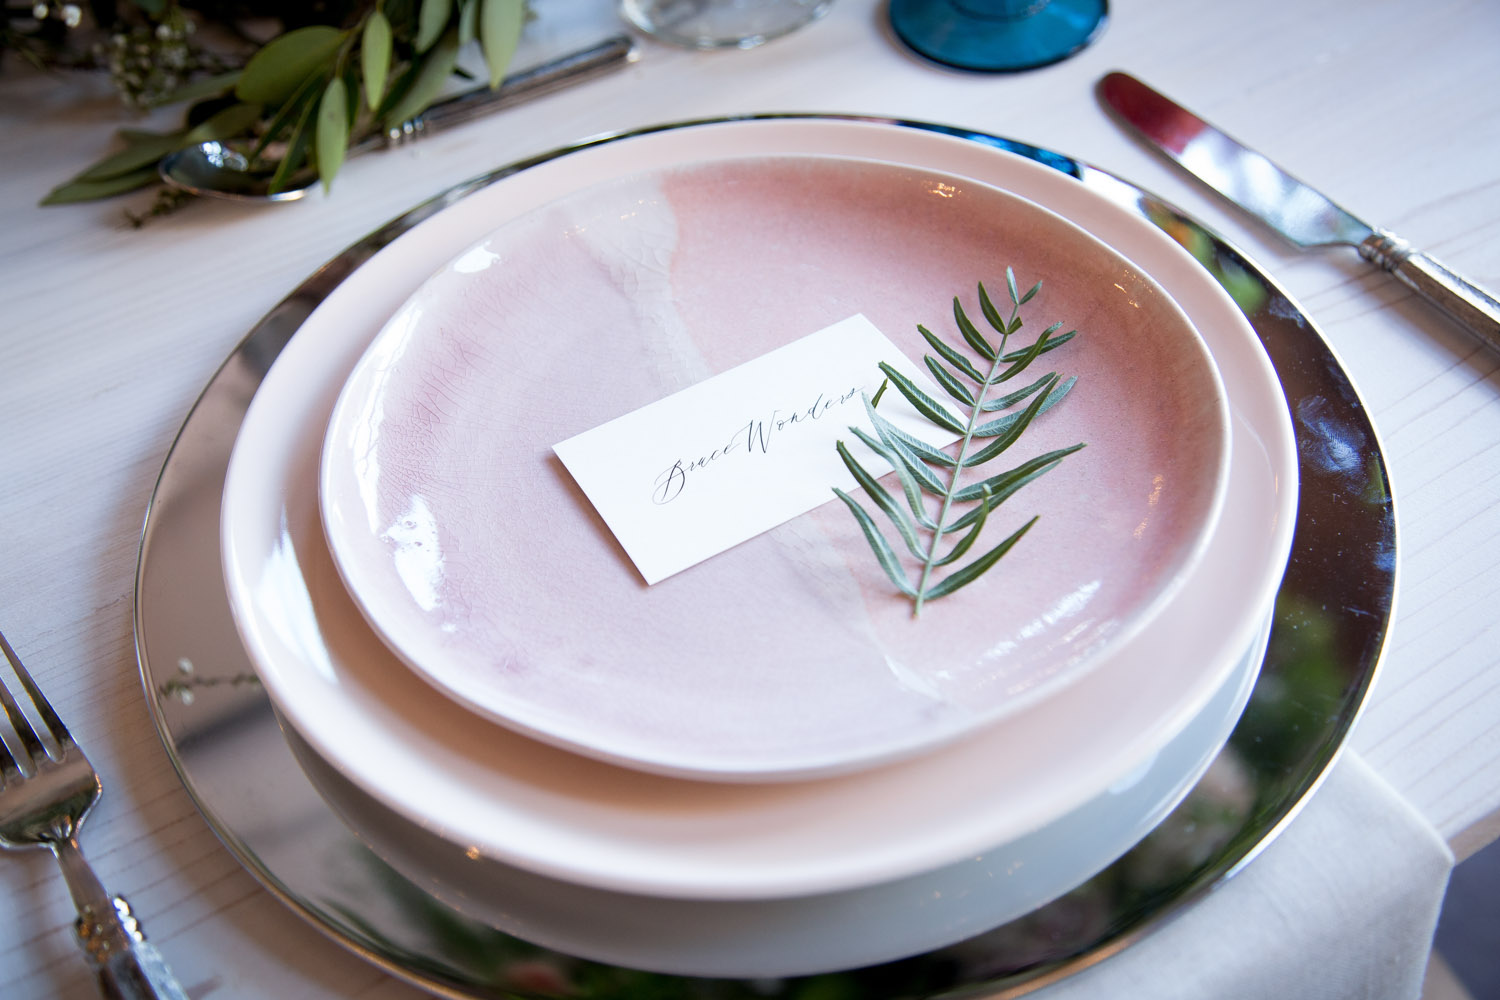 13-wedding-reception-place-setting-metallic-charger-plates-mahonen-photography.jpg